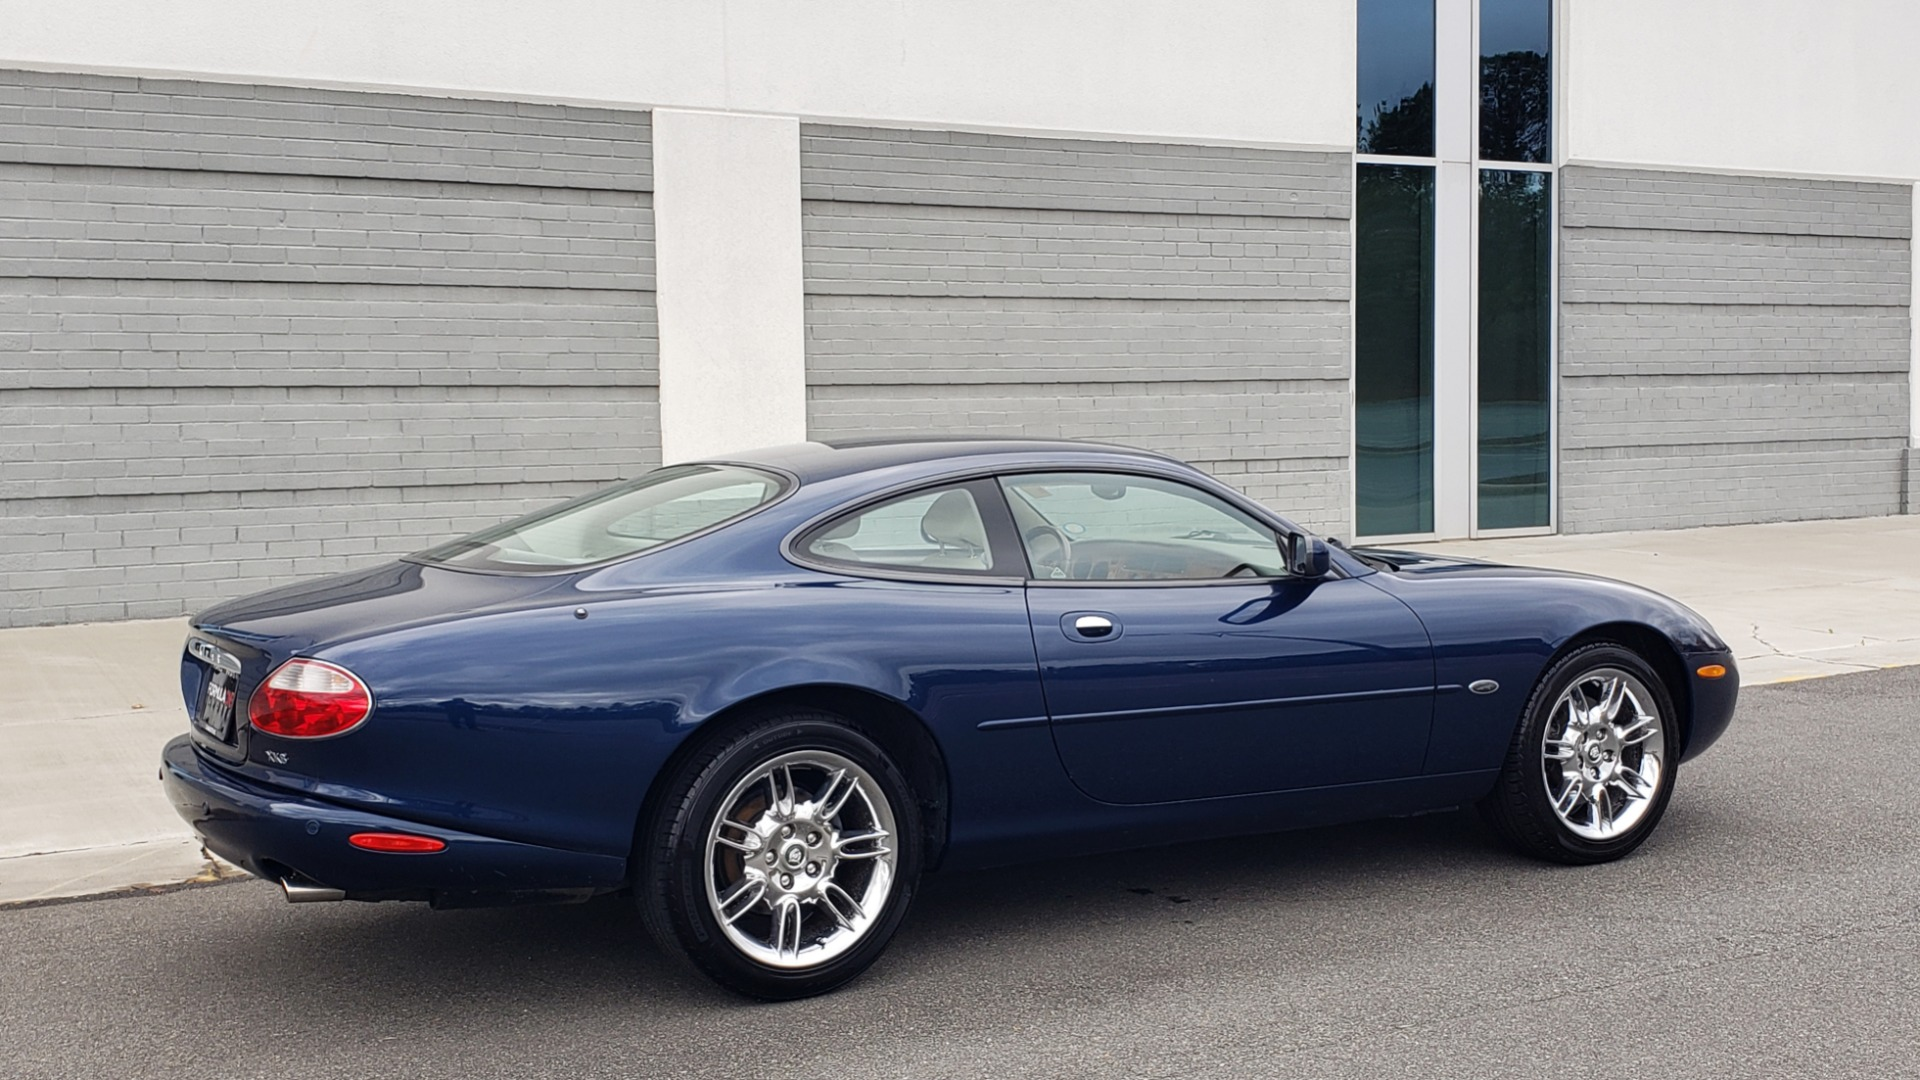 Used 2002 Jaguar XK8 COUPE / 4.0L V8 / 5-SPD AUTO / ALPINE SOUND / 18IN CHROME WHEELS for sale $16,450 at Formula Imports in Charlotte NC 28227 10